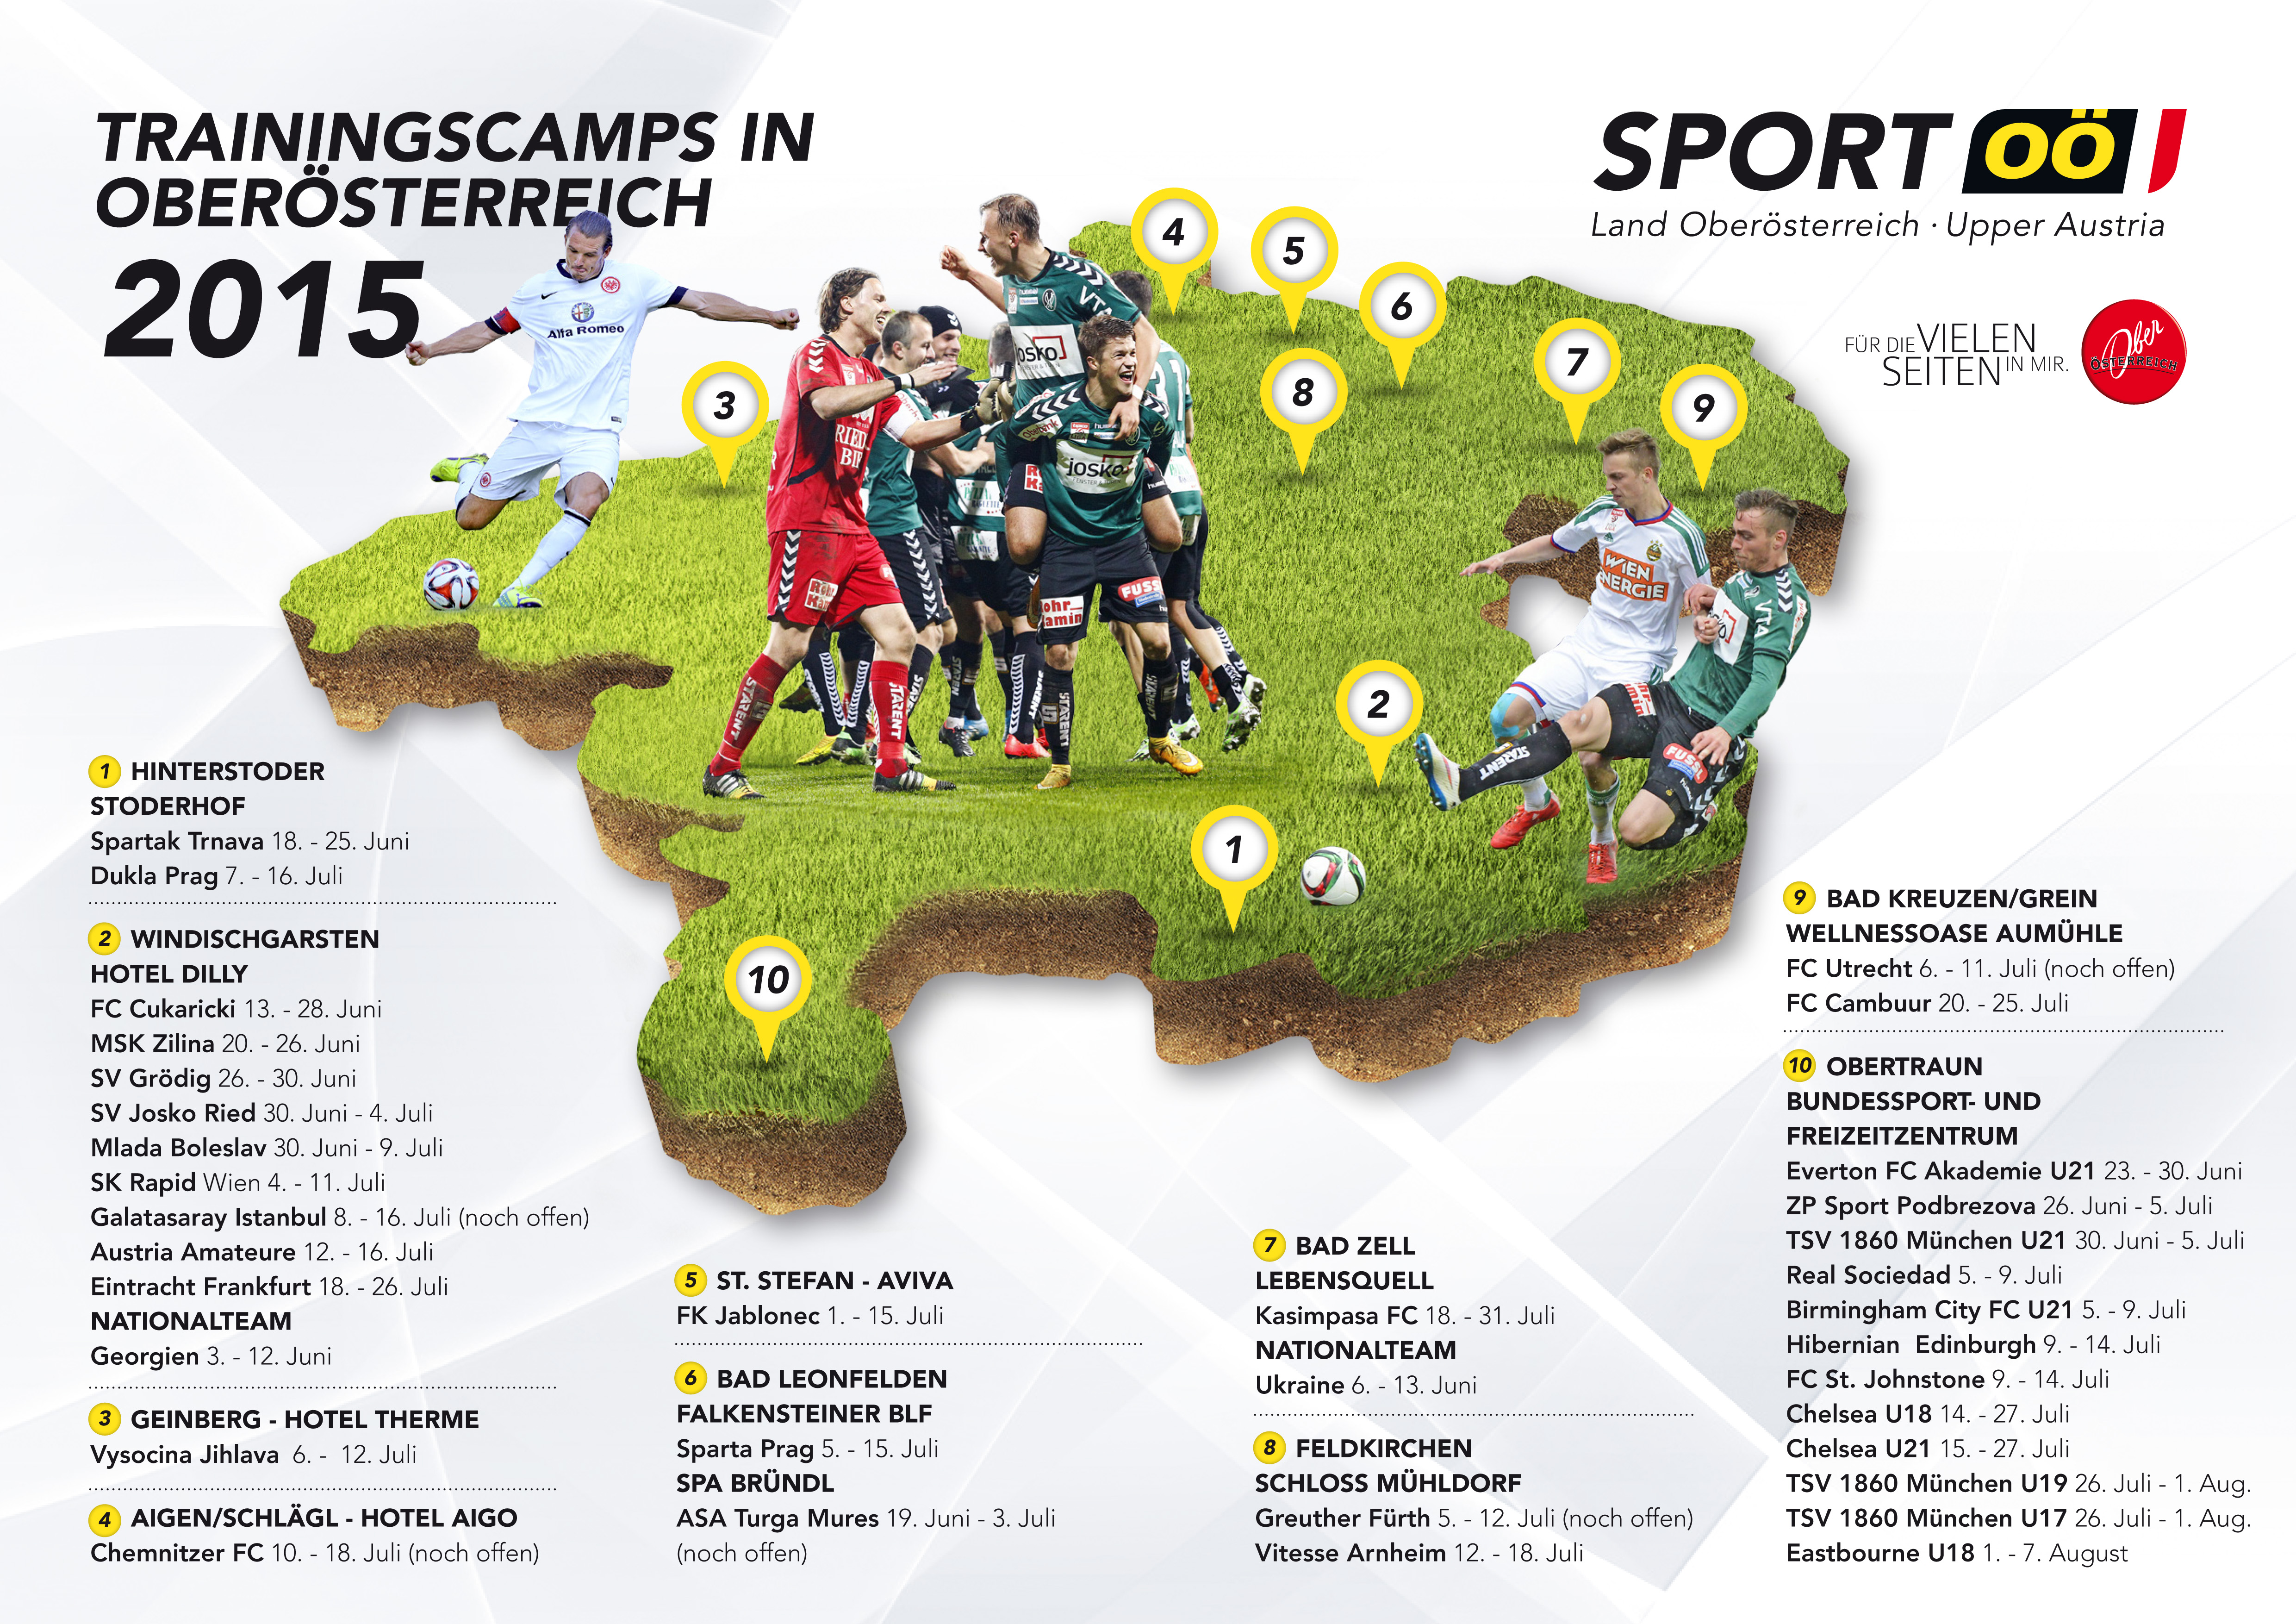 Fussball Trainingscamps in Oberösterreich 2015